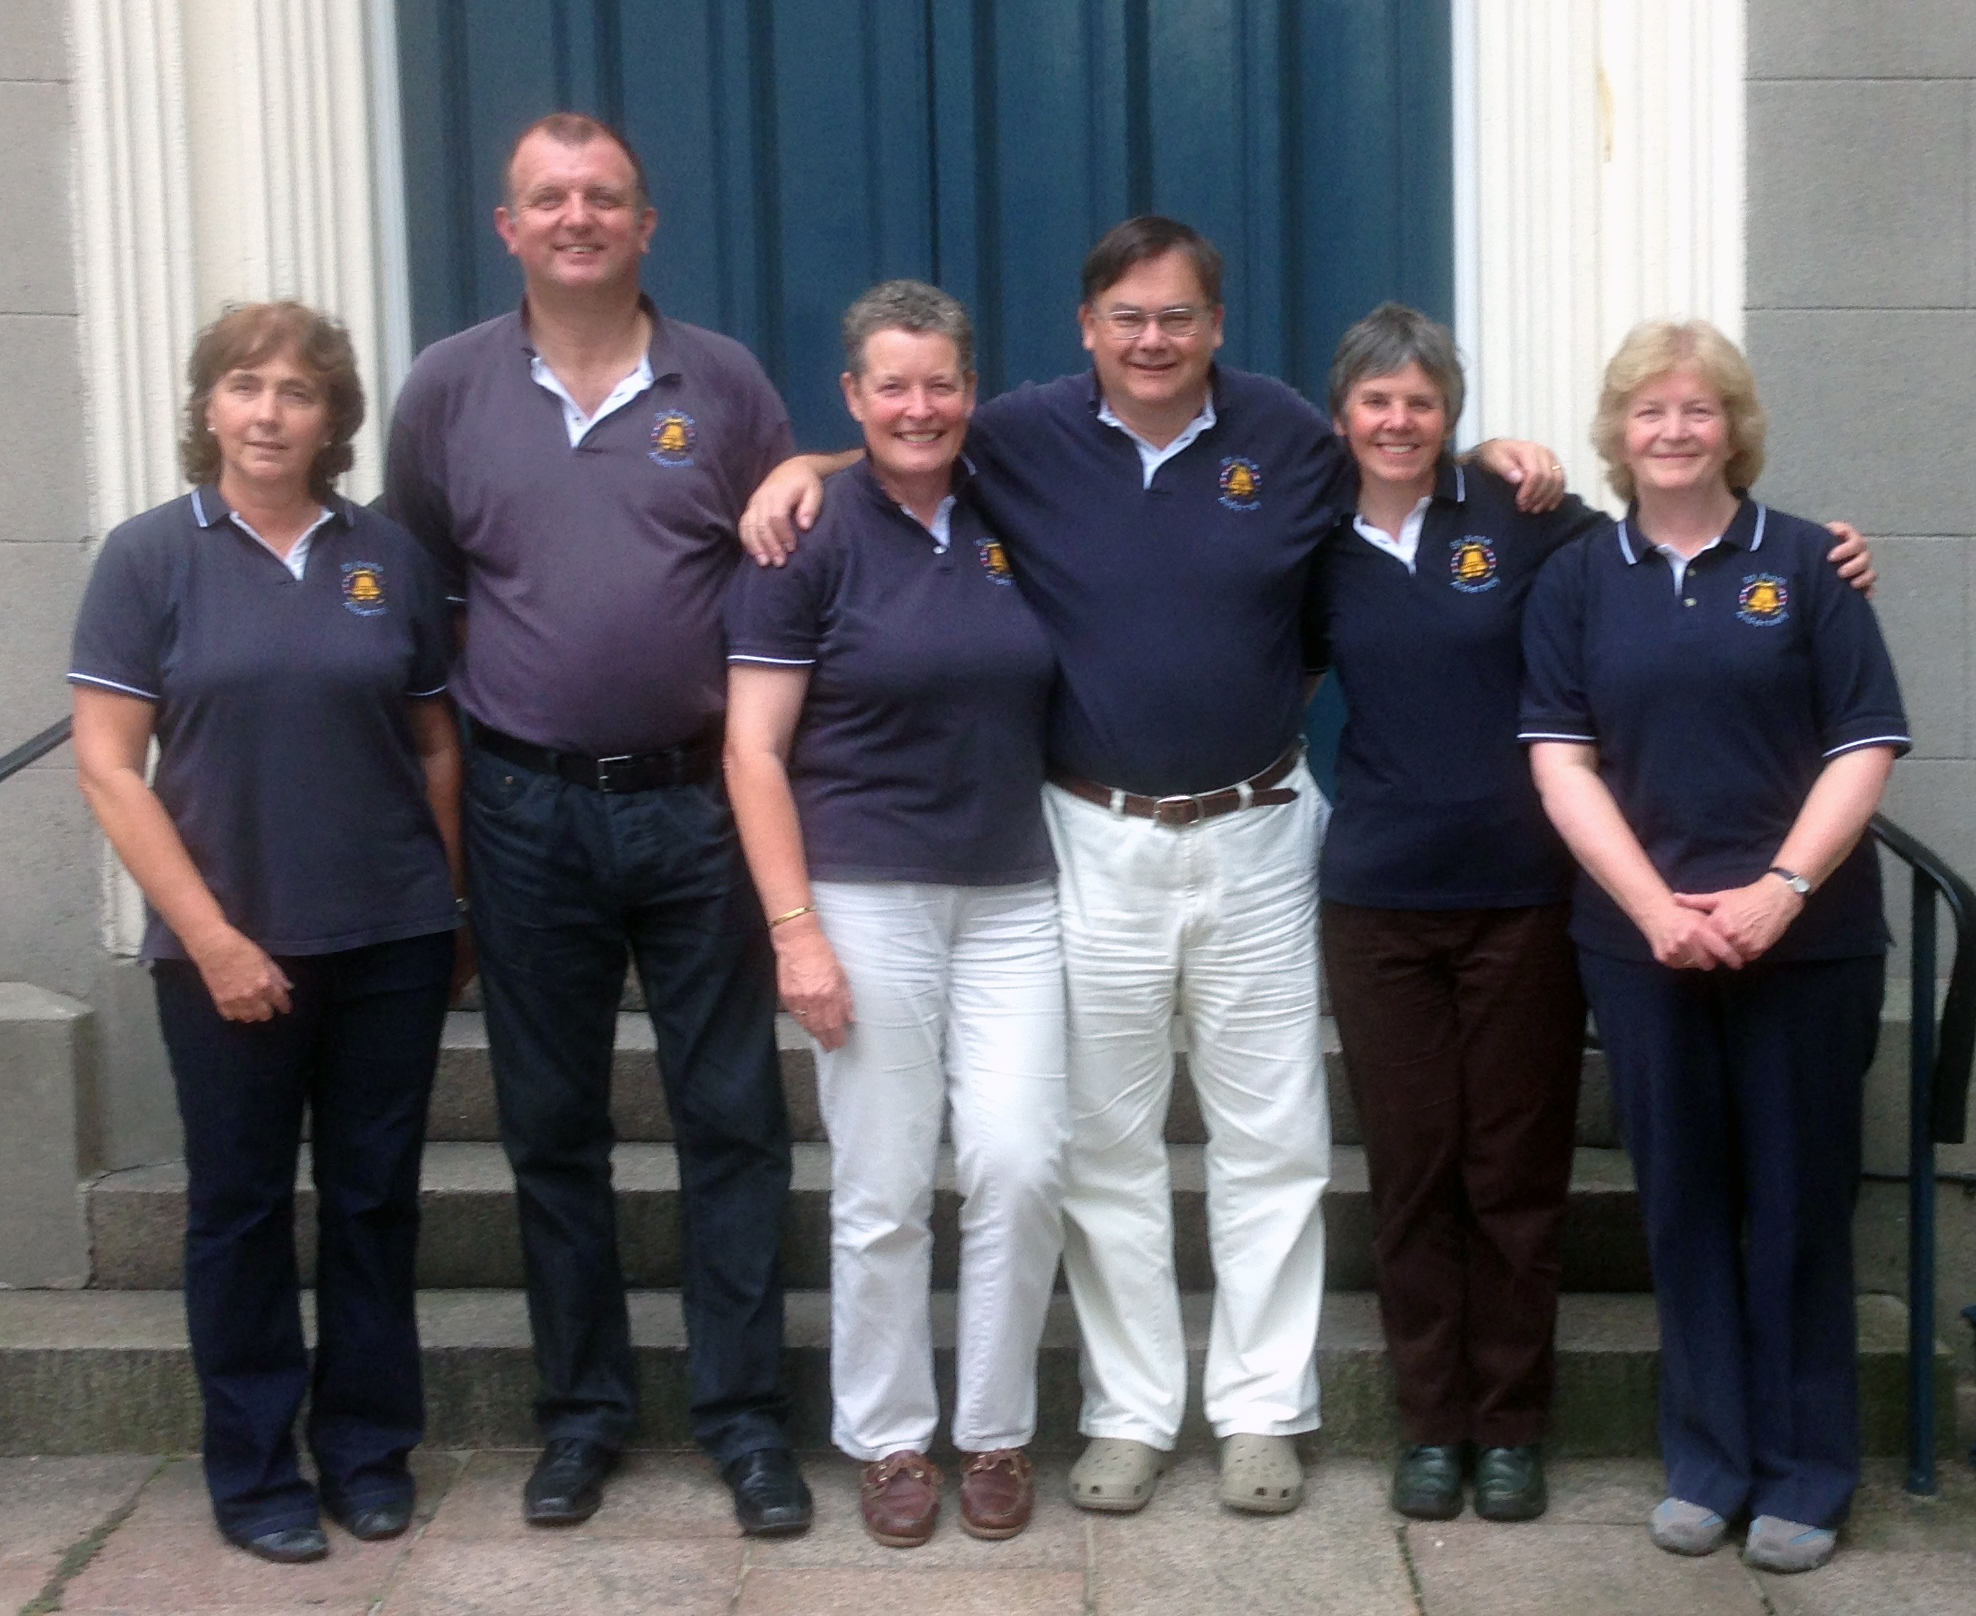 Striking Competition Team, 21-9-13 at St Marks, Jersey